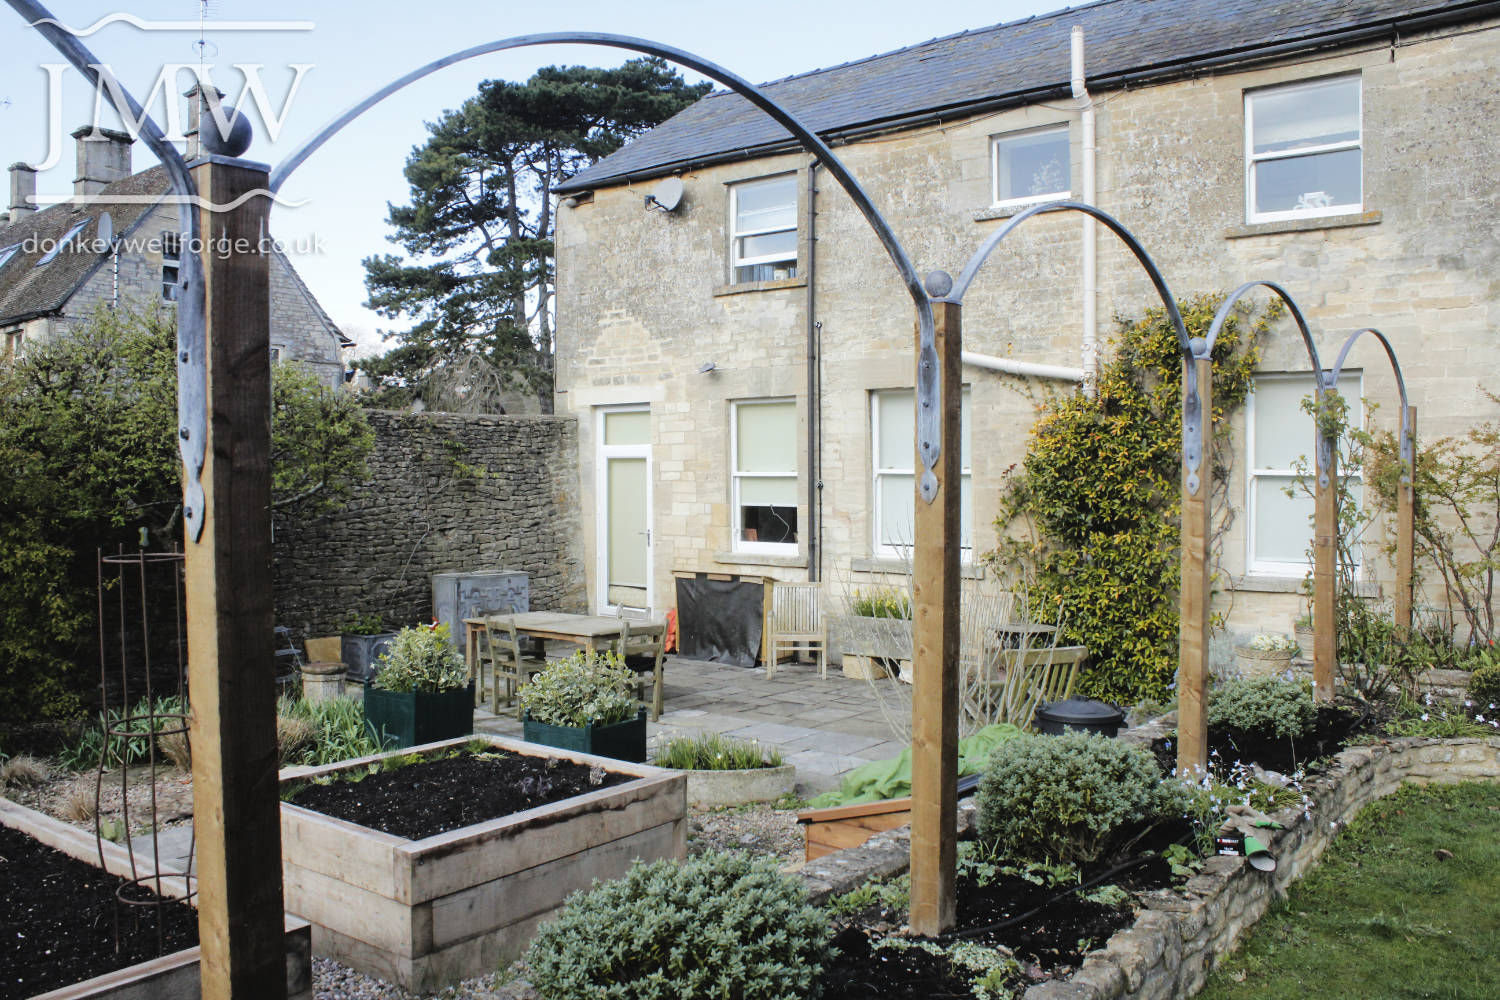 country-house-garden-steel-arches-galvanized-zinc-lead-finish-forged-metalwork